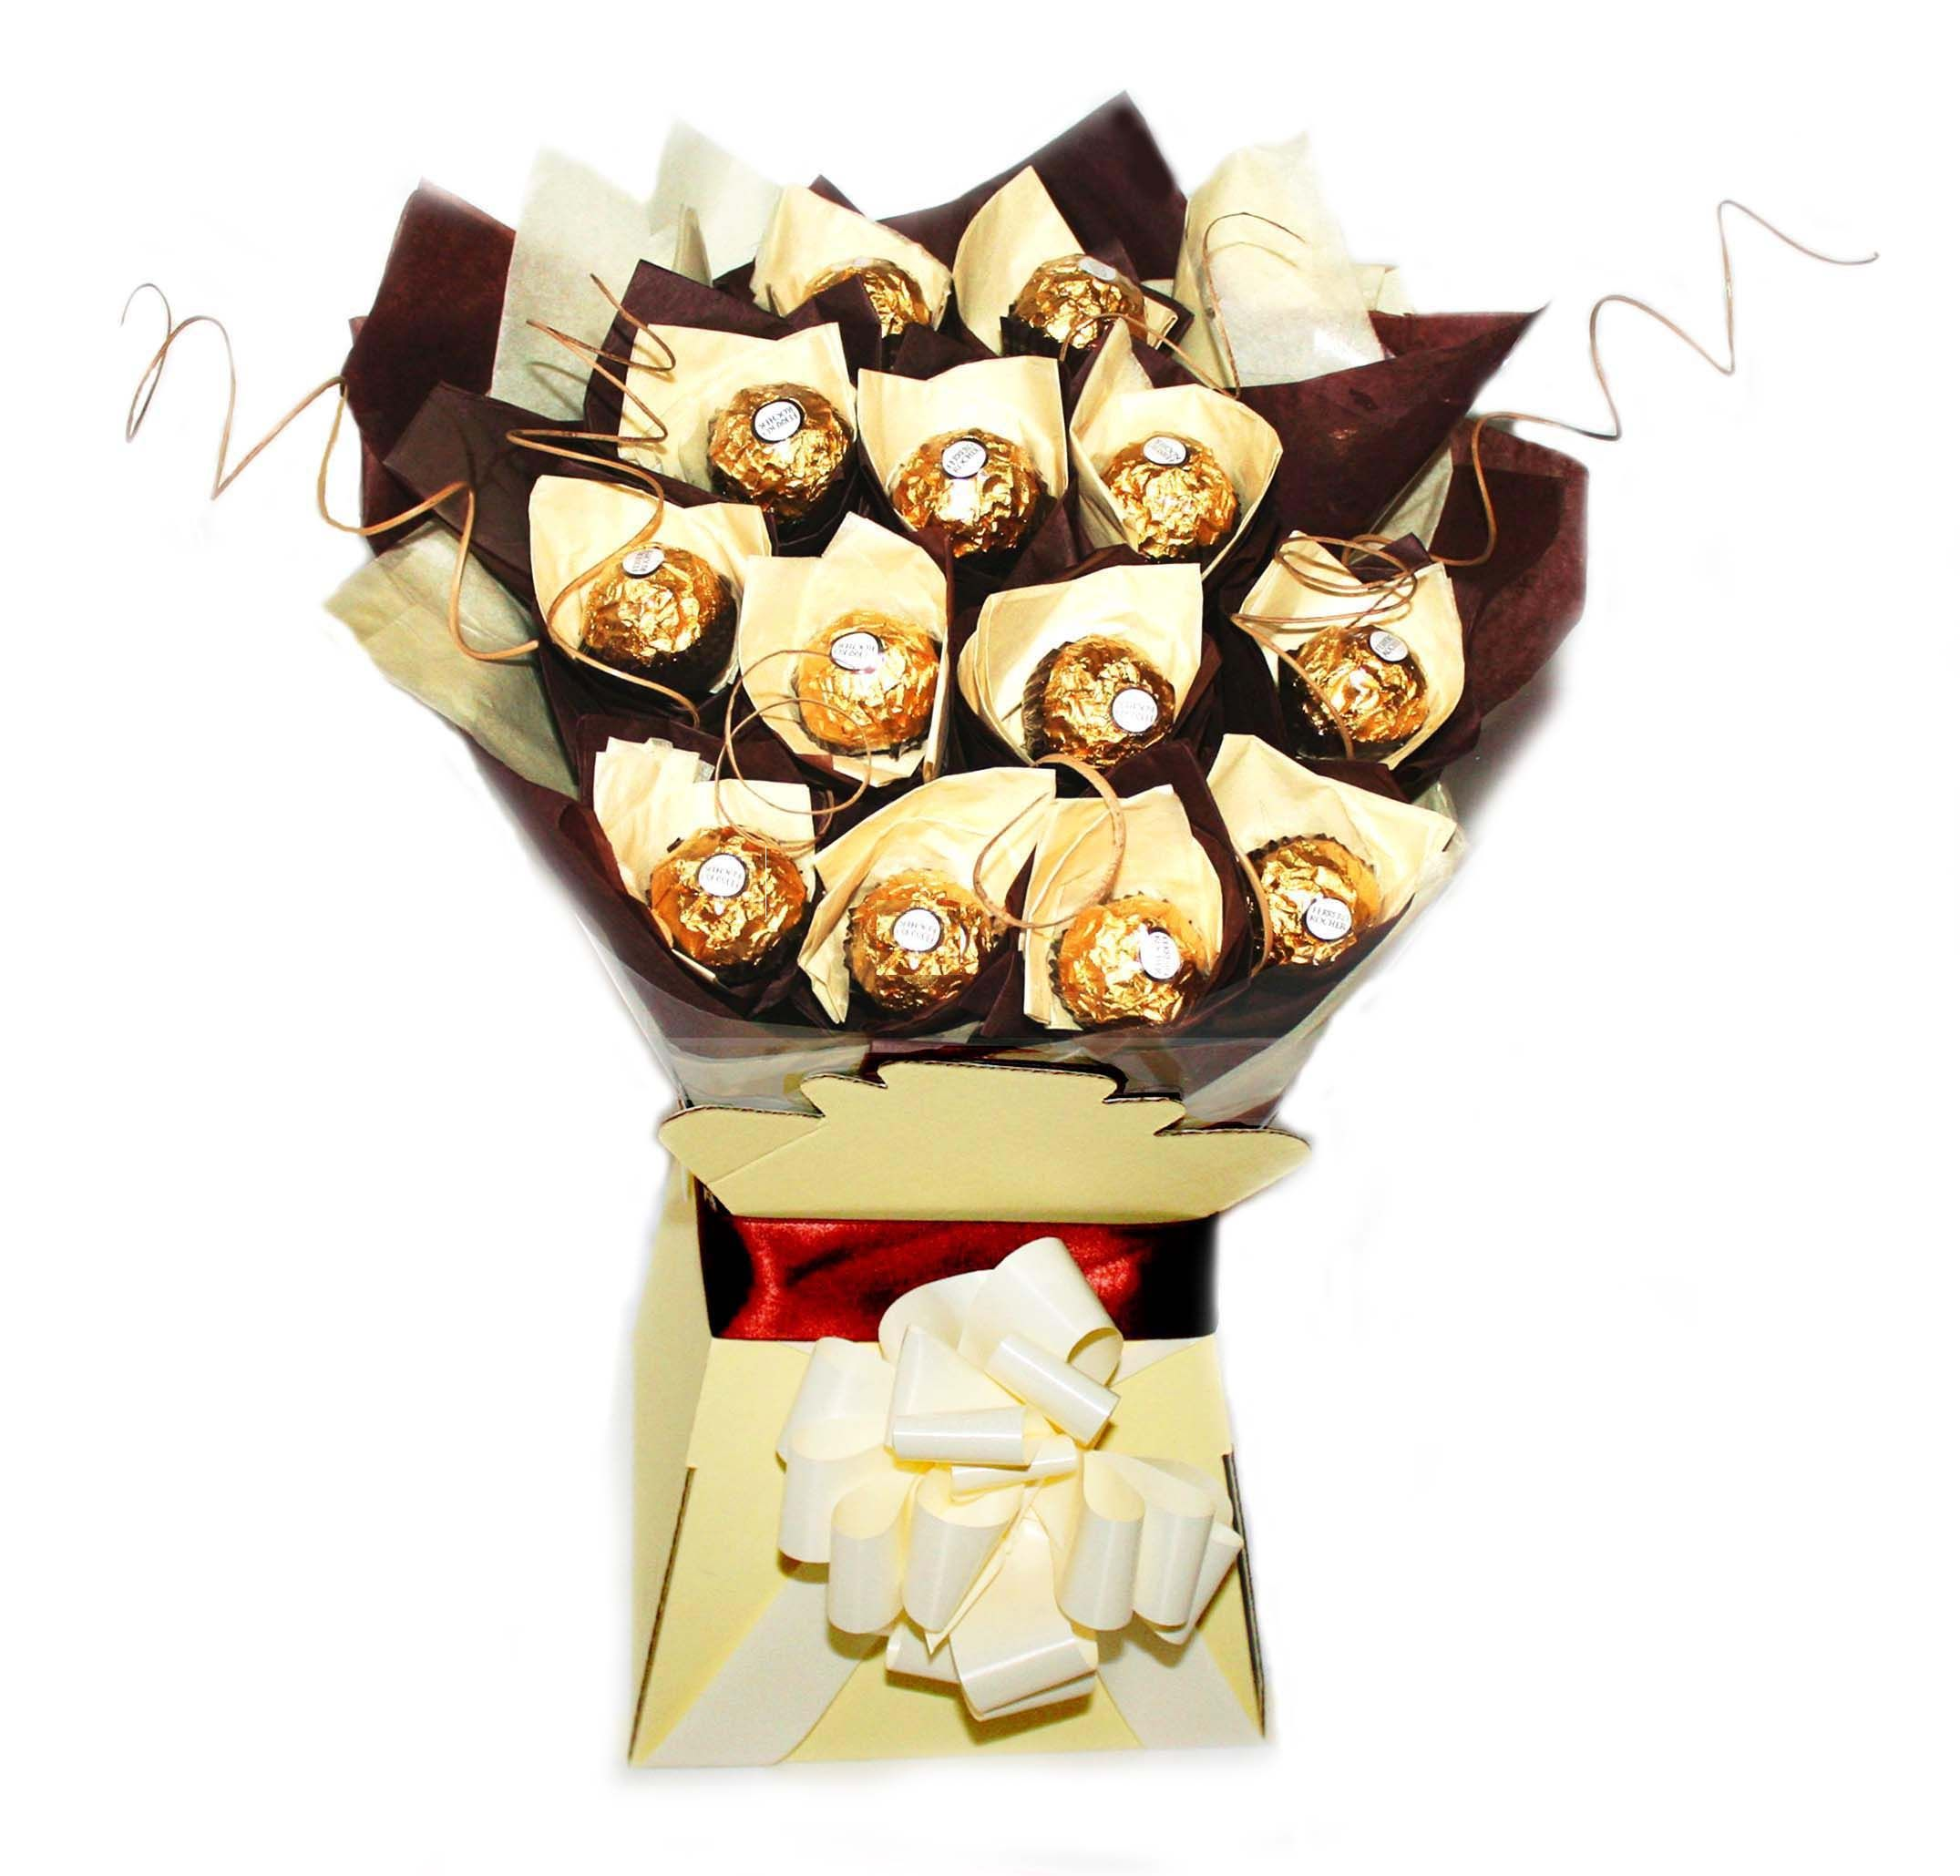 Chocolate bouquet on pinterest candy flowers bouquet of chocolate - Diy Gifts For X Mas Gift Ferrero Rocher Bouquet Rocher Chocolatechocolate